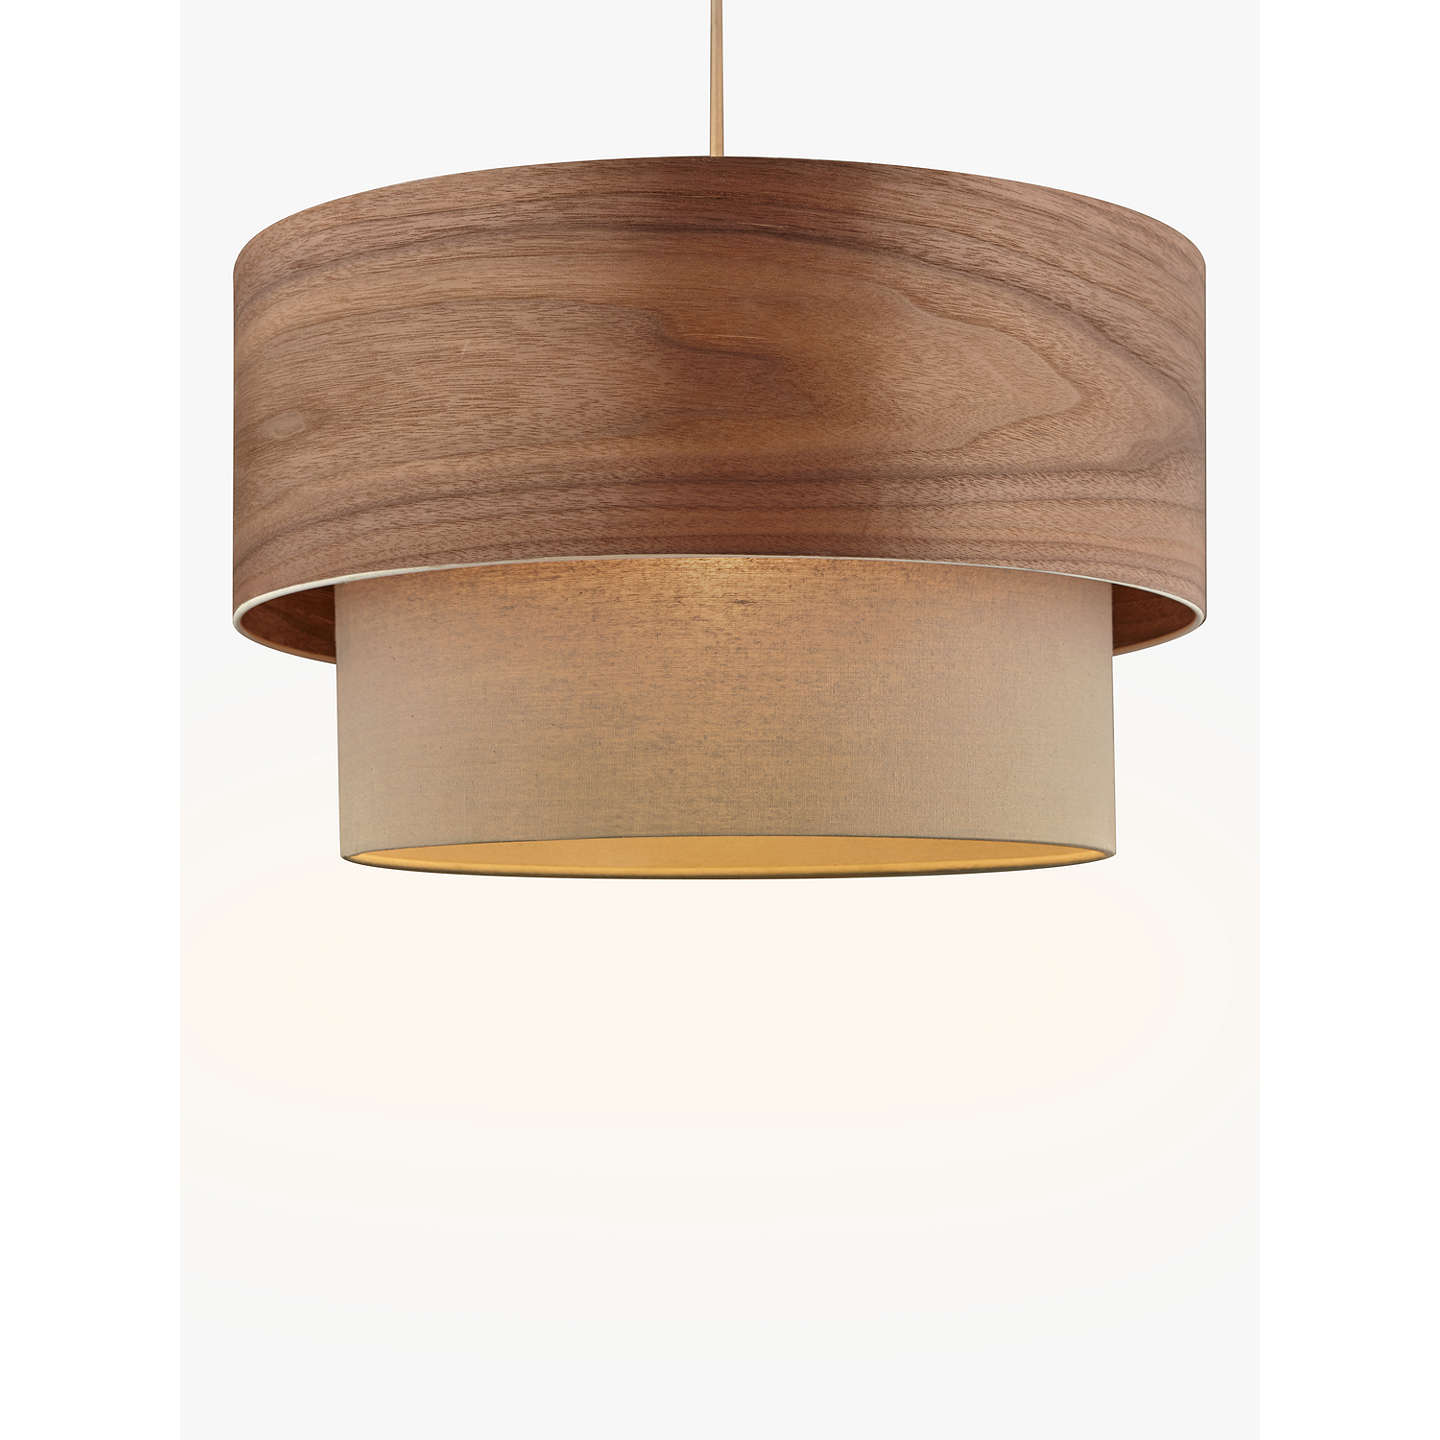 Design project by john lewis no028 ceiling light walnut veneer buydesign project by john lewis no028 ceiling light walnut veneergrey online aloadofball Image collections